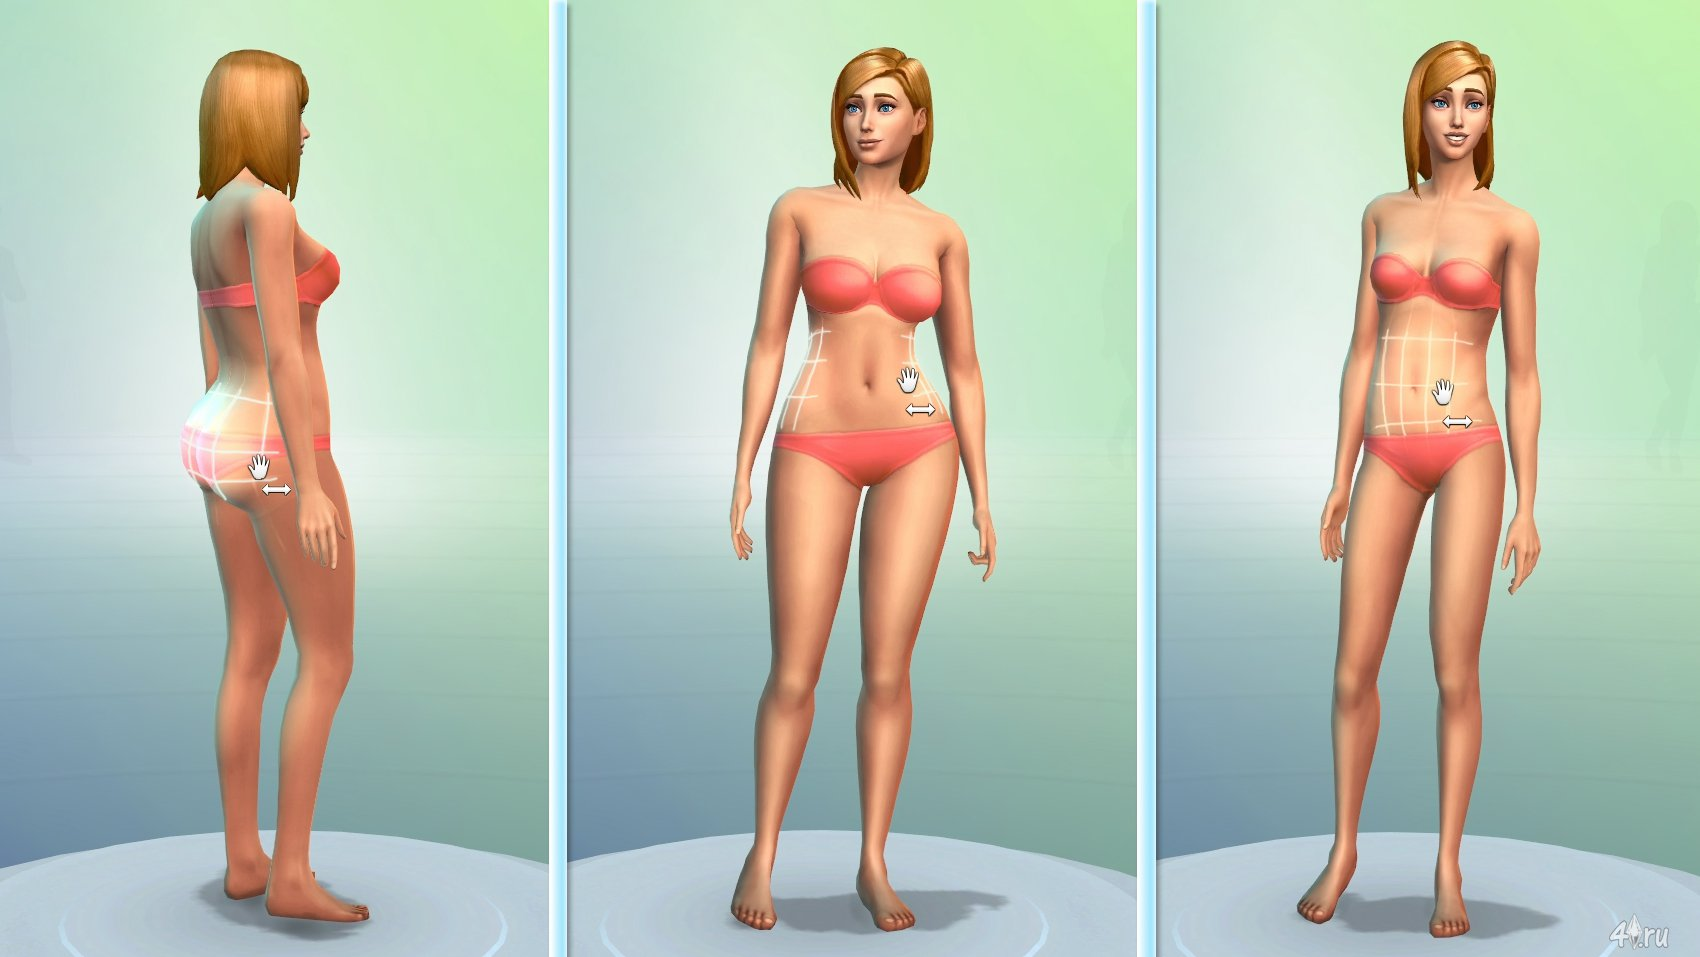 The sims castaway nude patch erotic clips